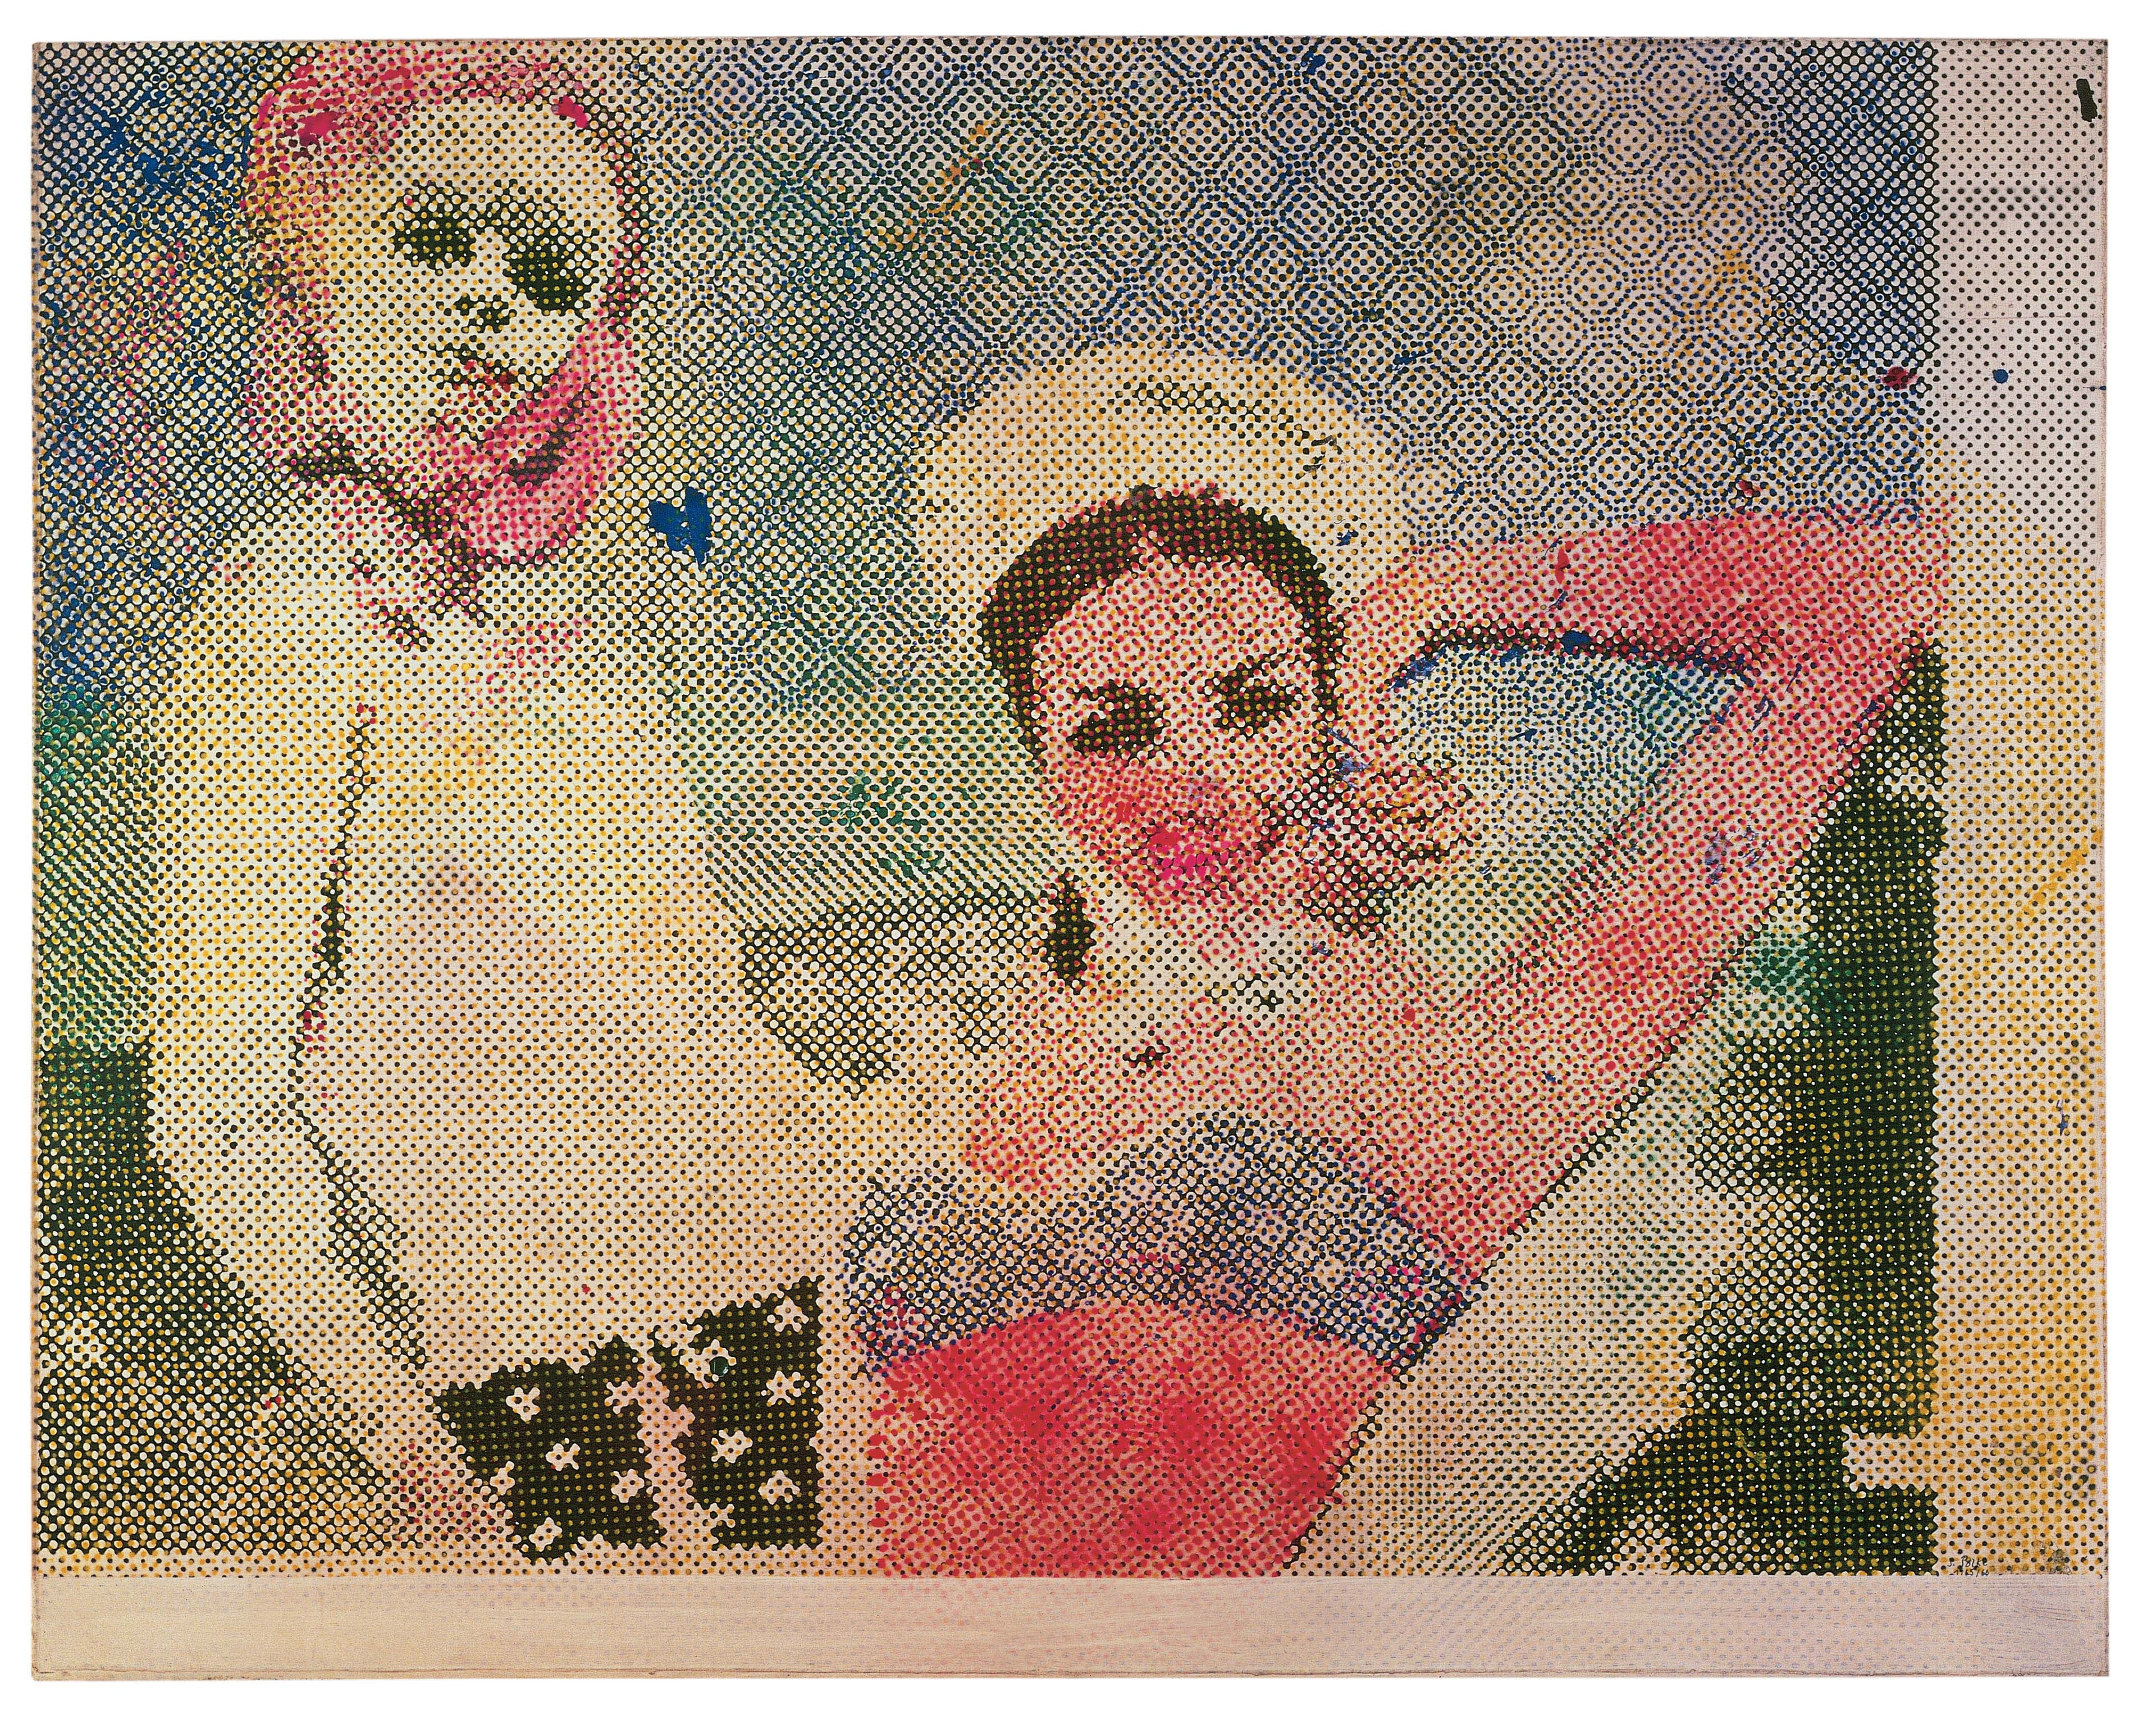 Sigmar Polke, Girlfriends (Freundinnen),  dispersion paint on canvas, 1500 x 1900mm (1965-66). Courtesy of the artist.